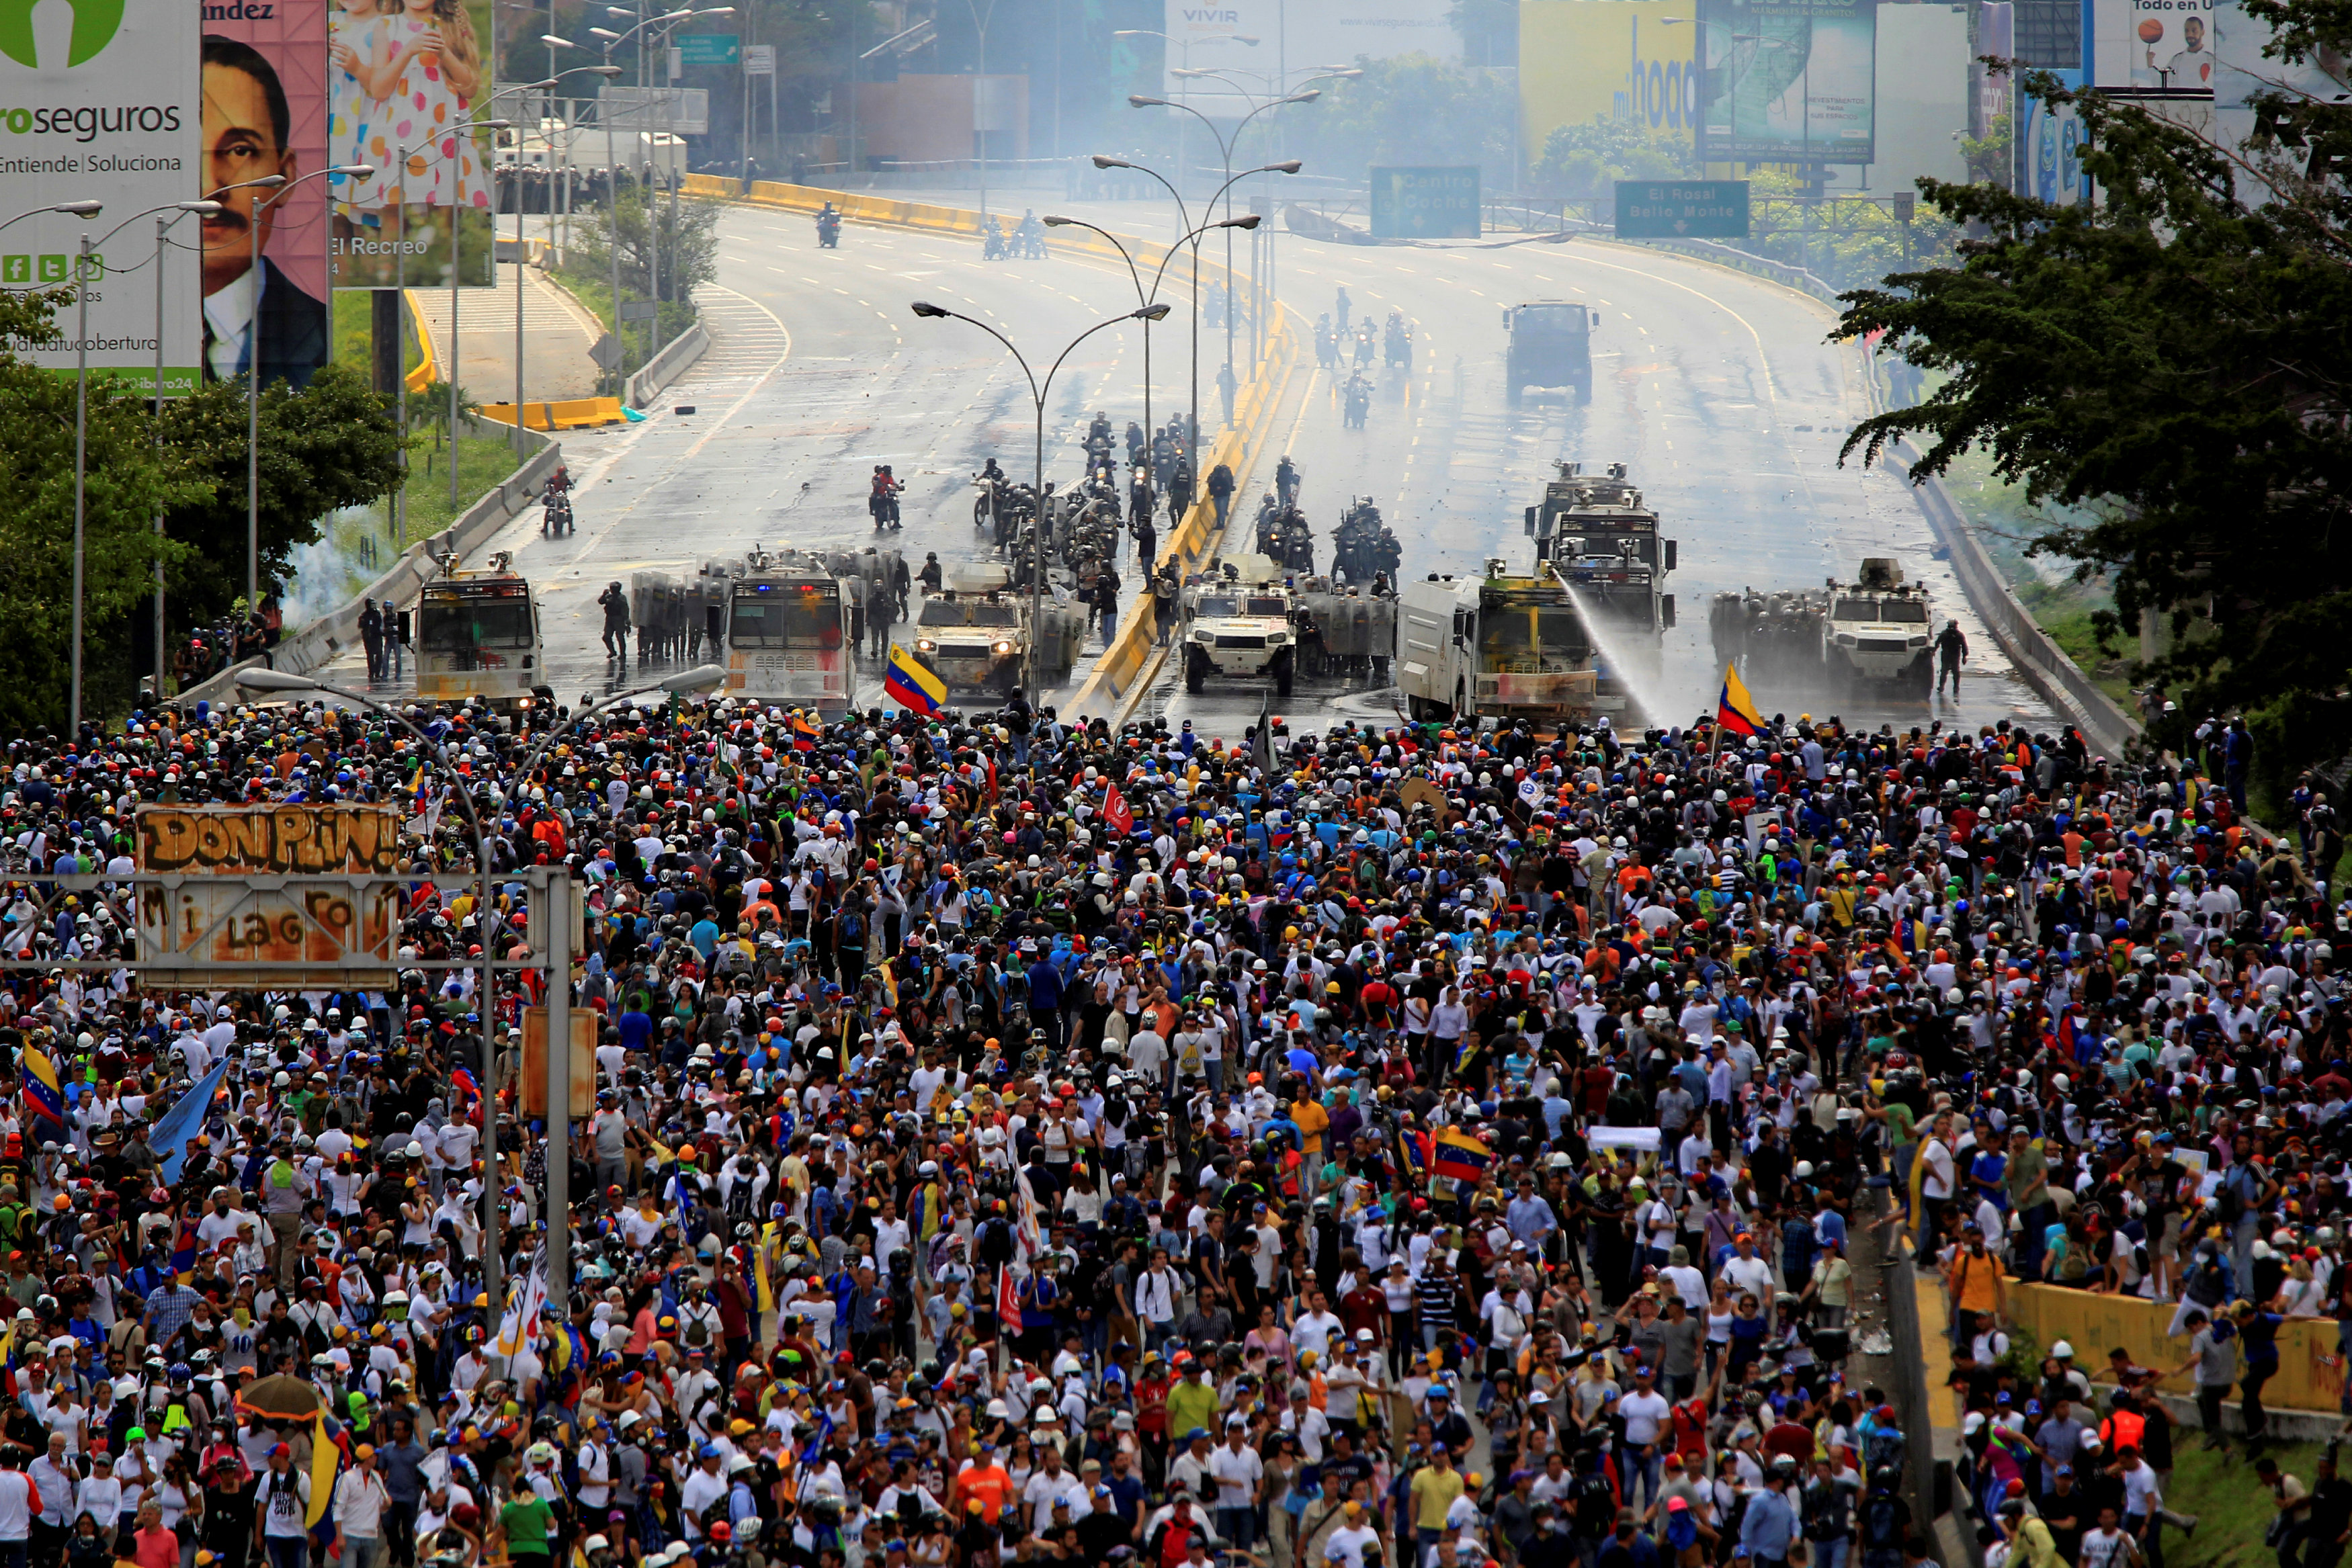 Venezuela systematically abused foes in 2017 protests: rights groups